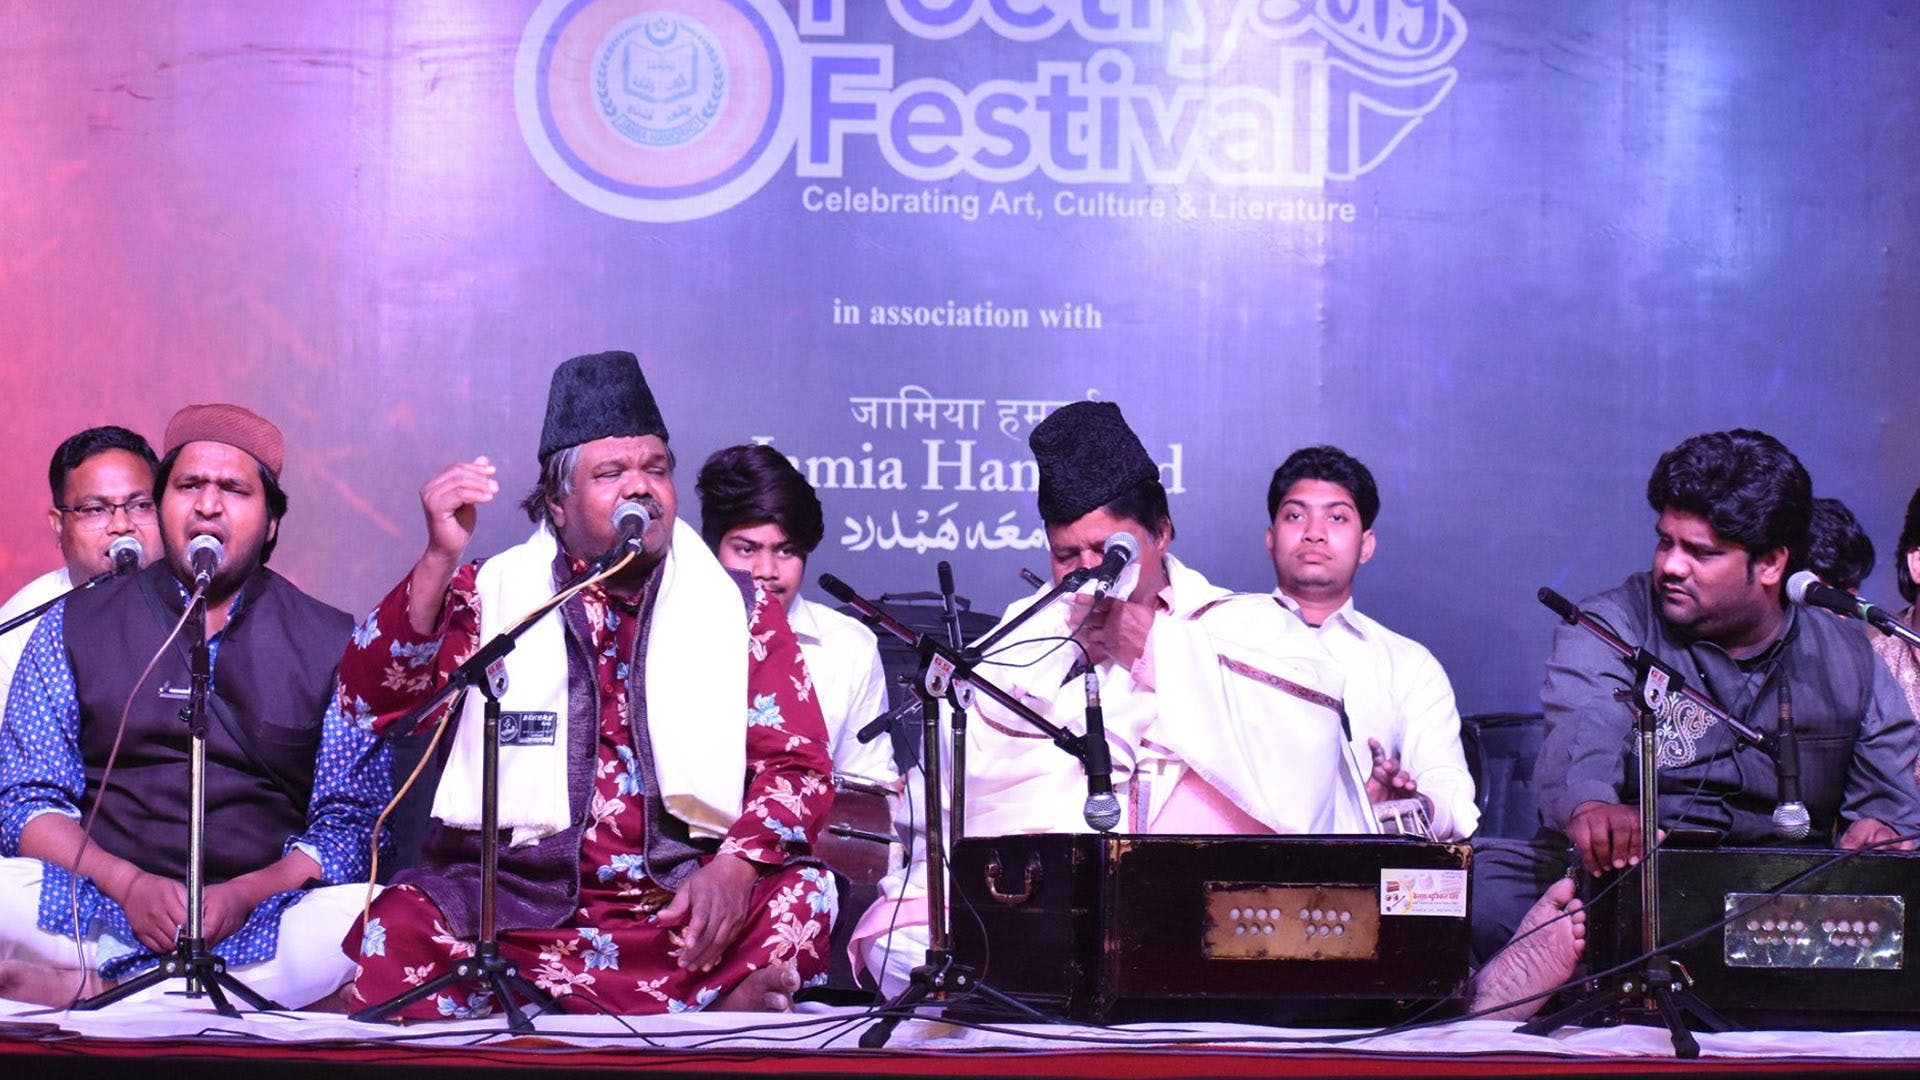 image - This Poetry & Literature Festival Will Have Classical Music Performances, Qawwalis, & More